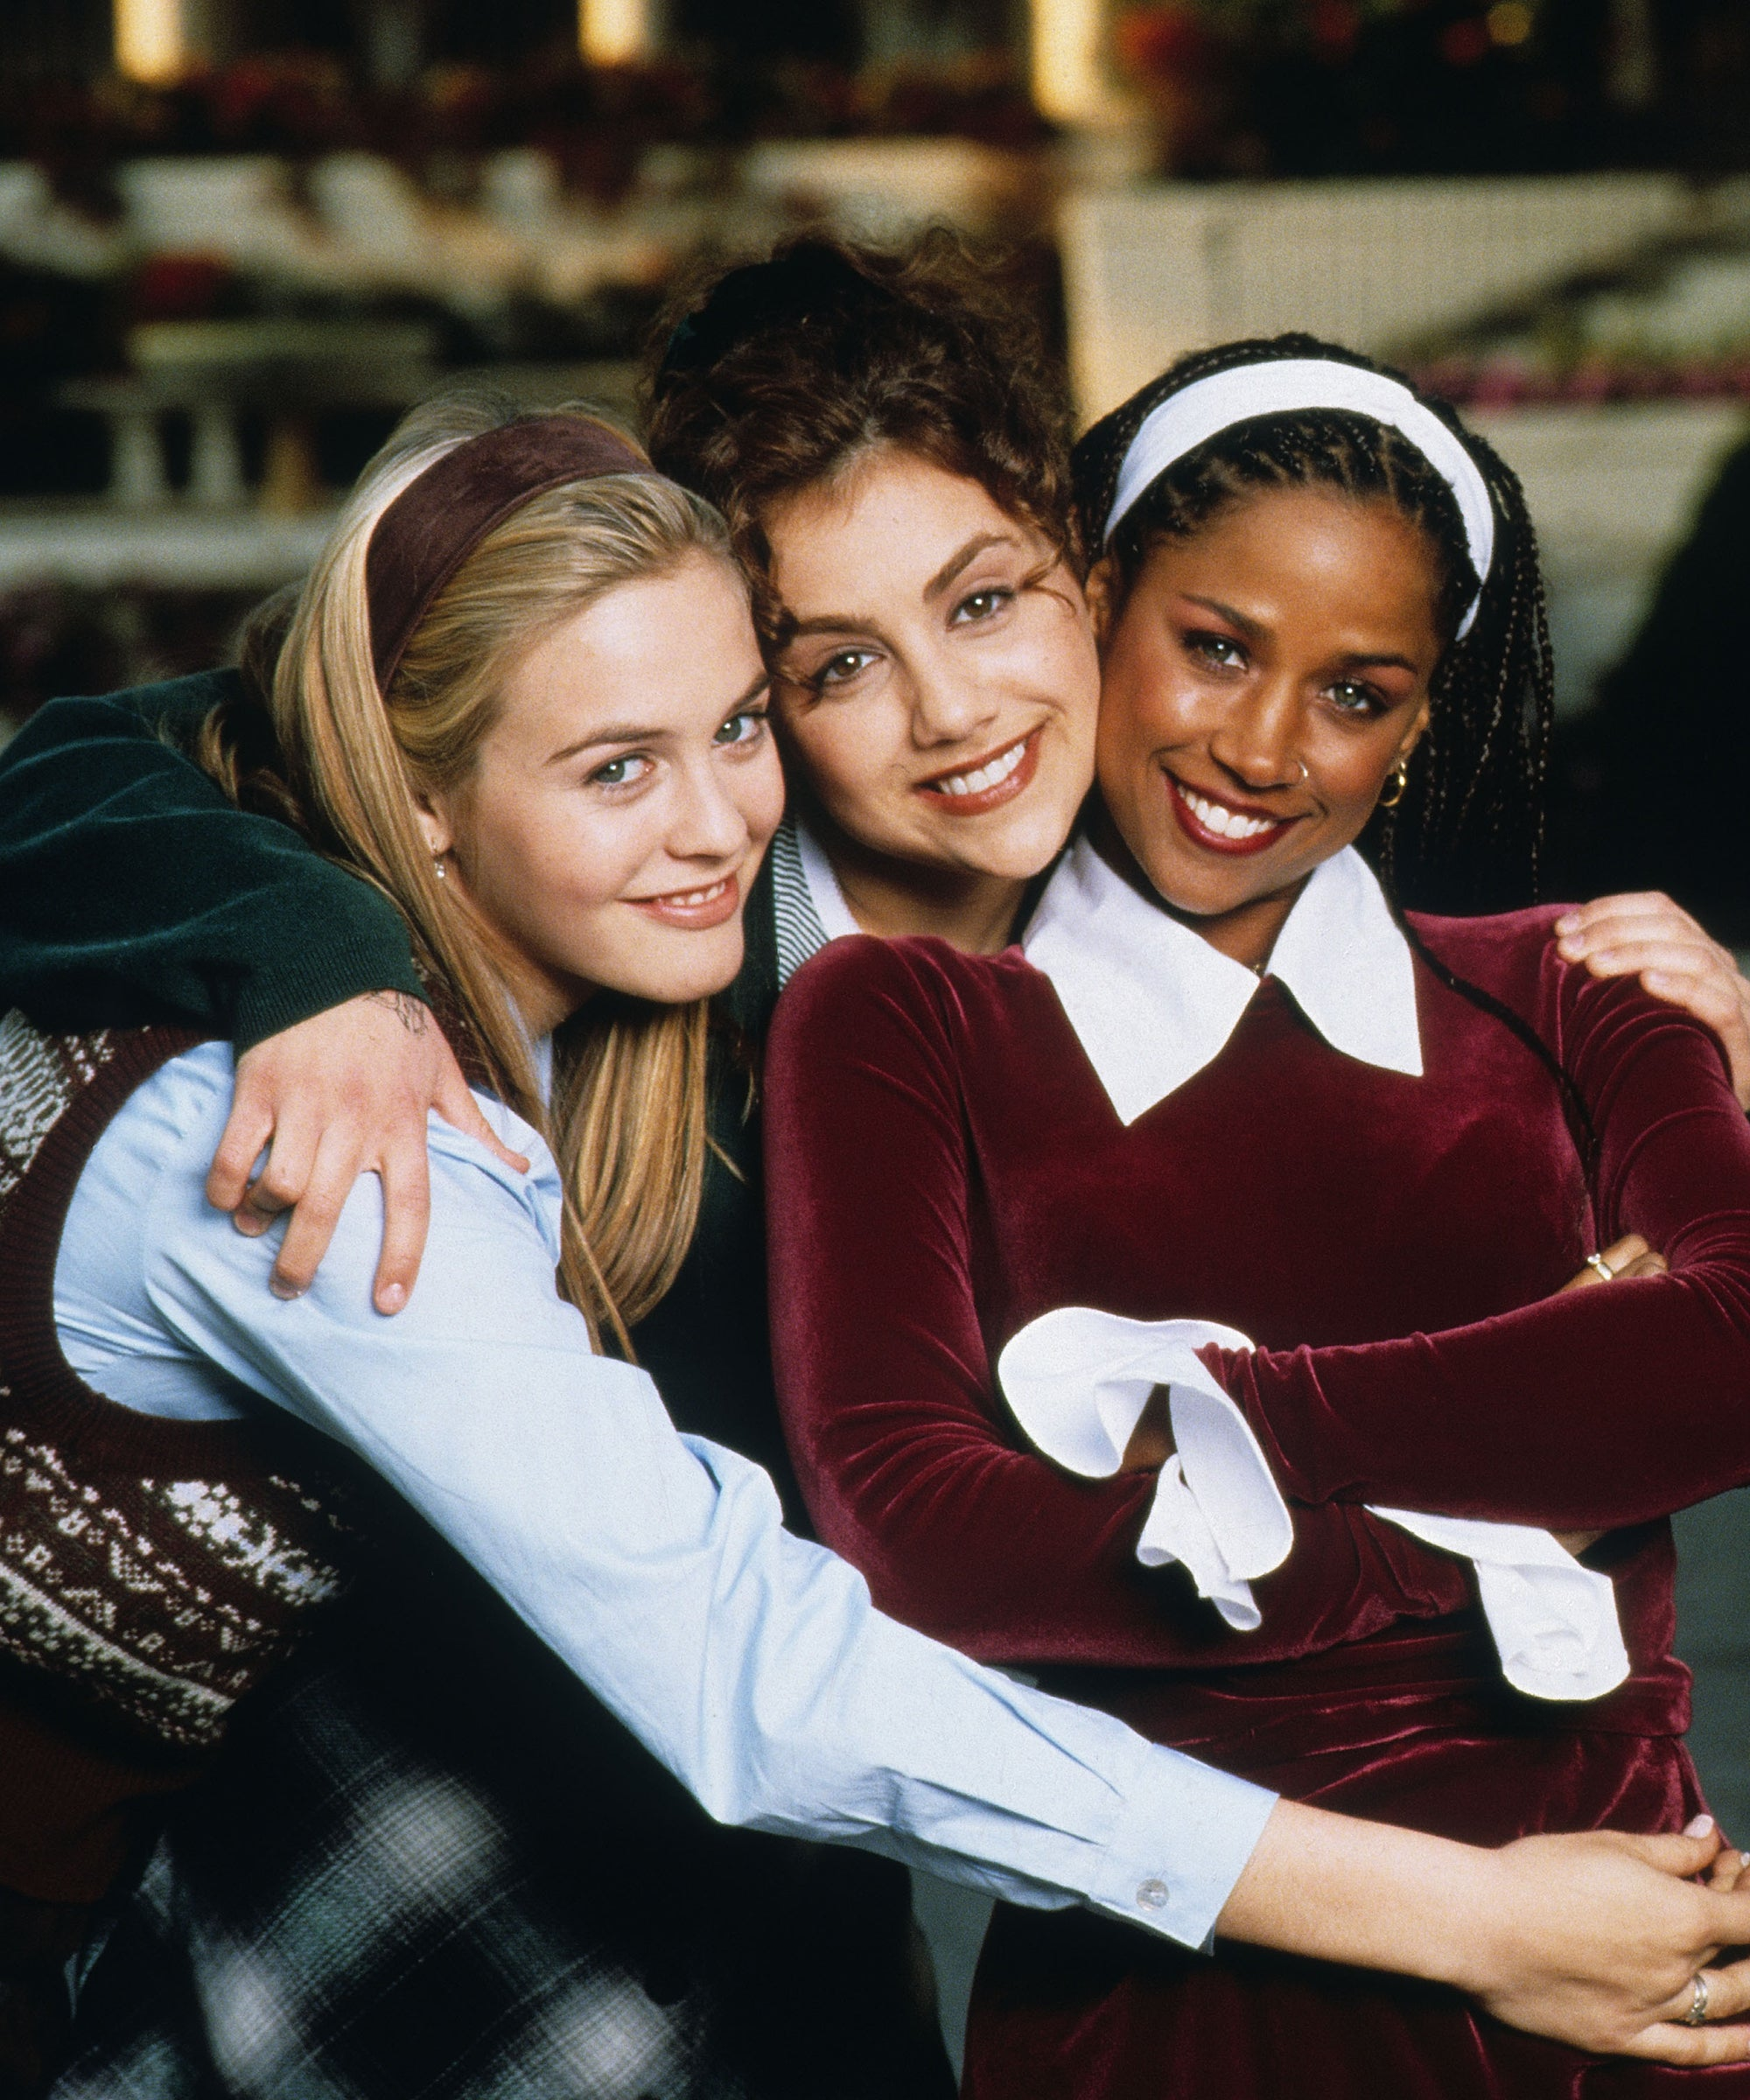 How Old Was The Cast When Clueless Was Made In 1995,Country Cottage Cottage Style Decor Ideas